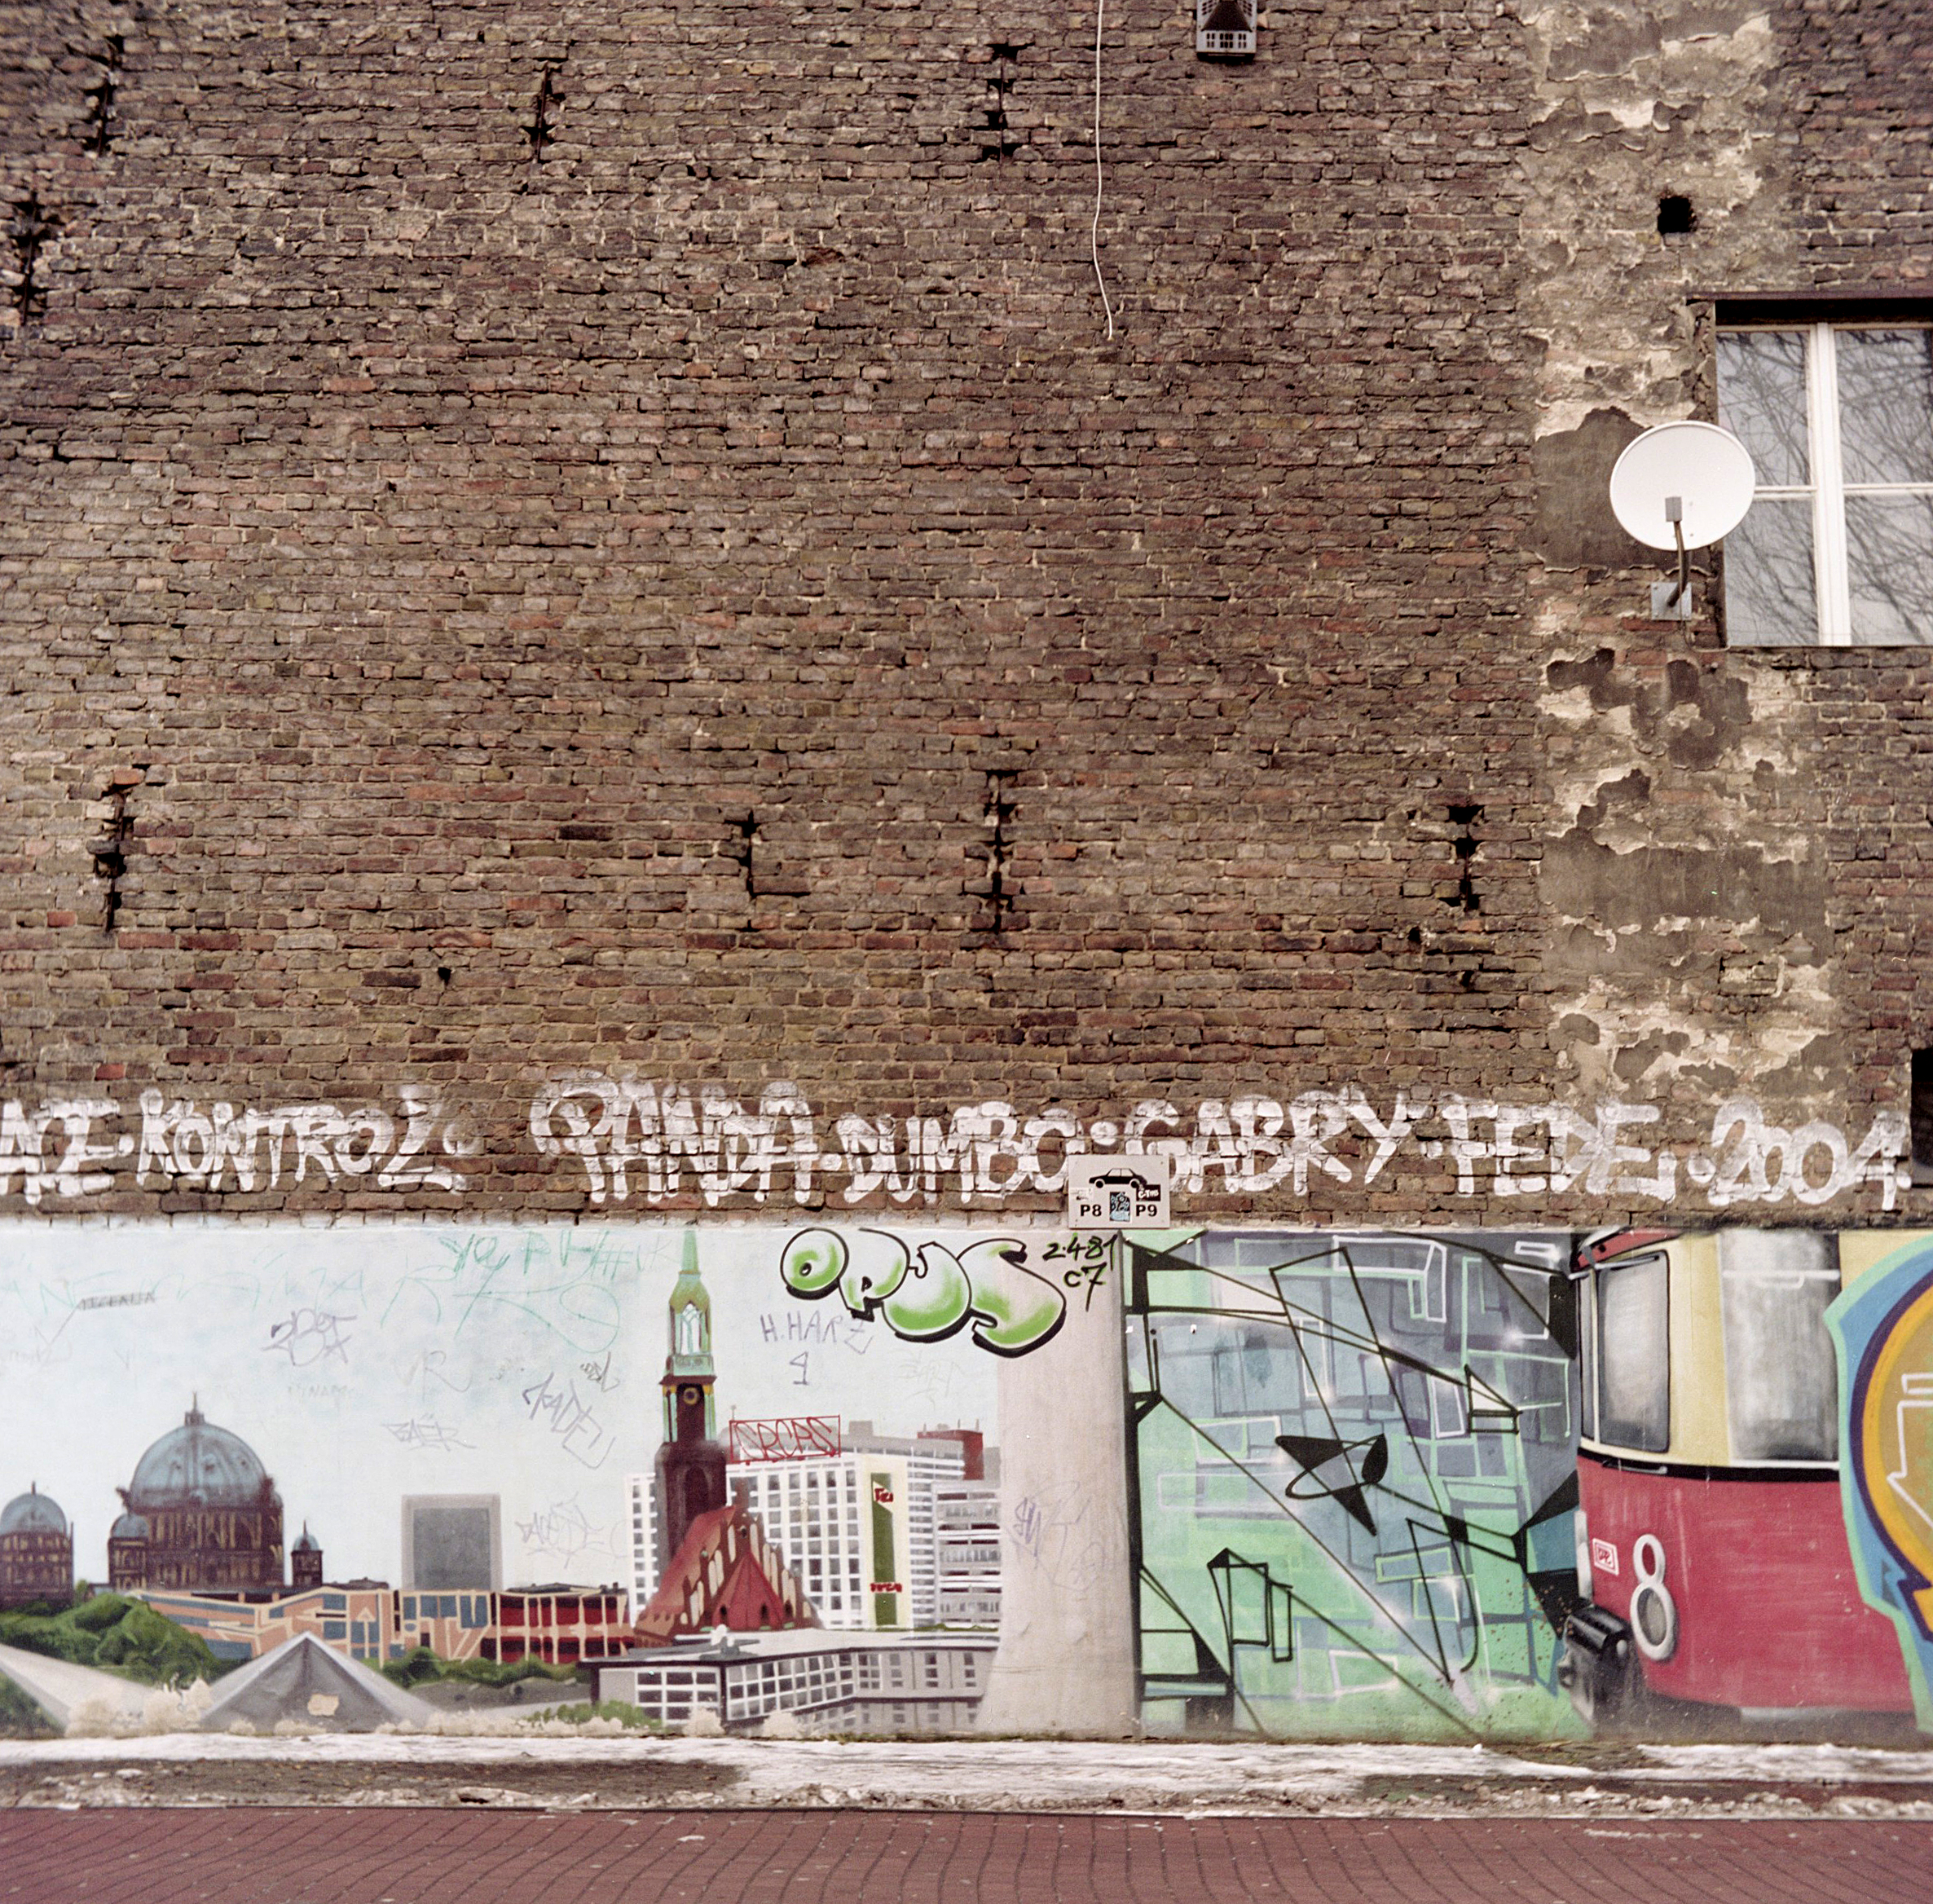 Shot on a Yashicaflex-C. Berlin, 2009.